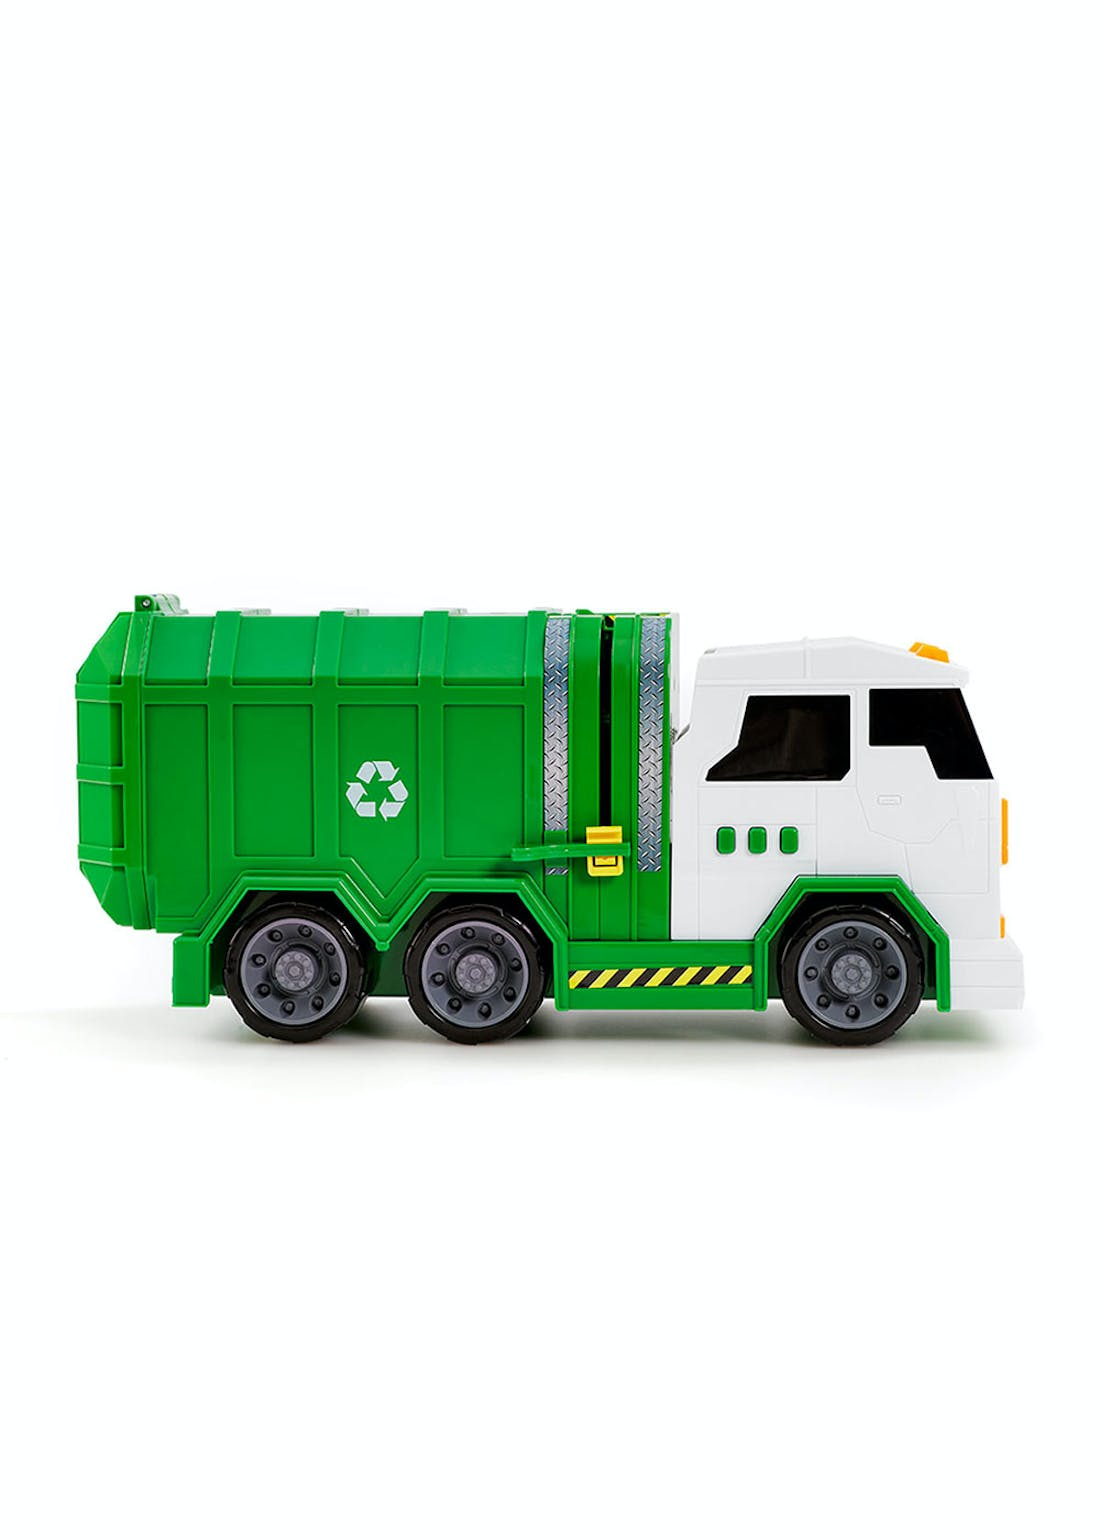 Friction Lights and Sounds Garbage Truck (39cm x 21cm x 15cm)